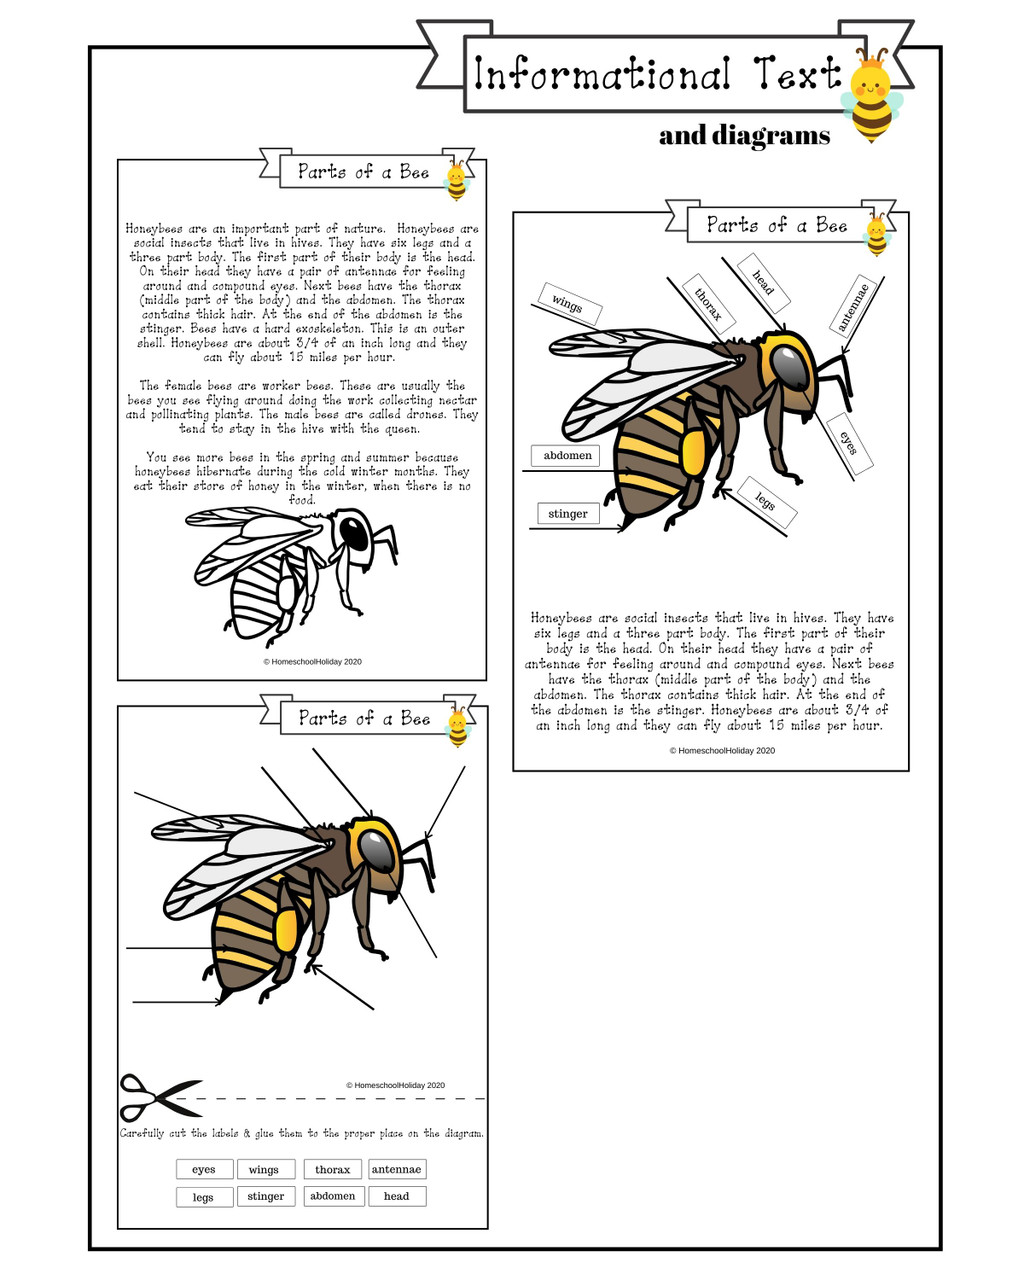 samples of Informational Text passage and diagram activity